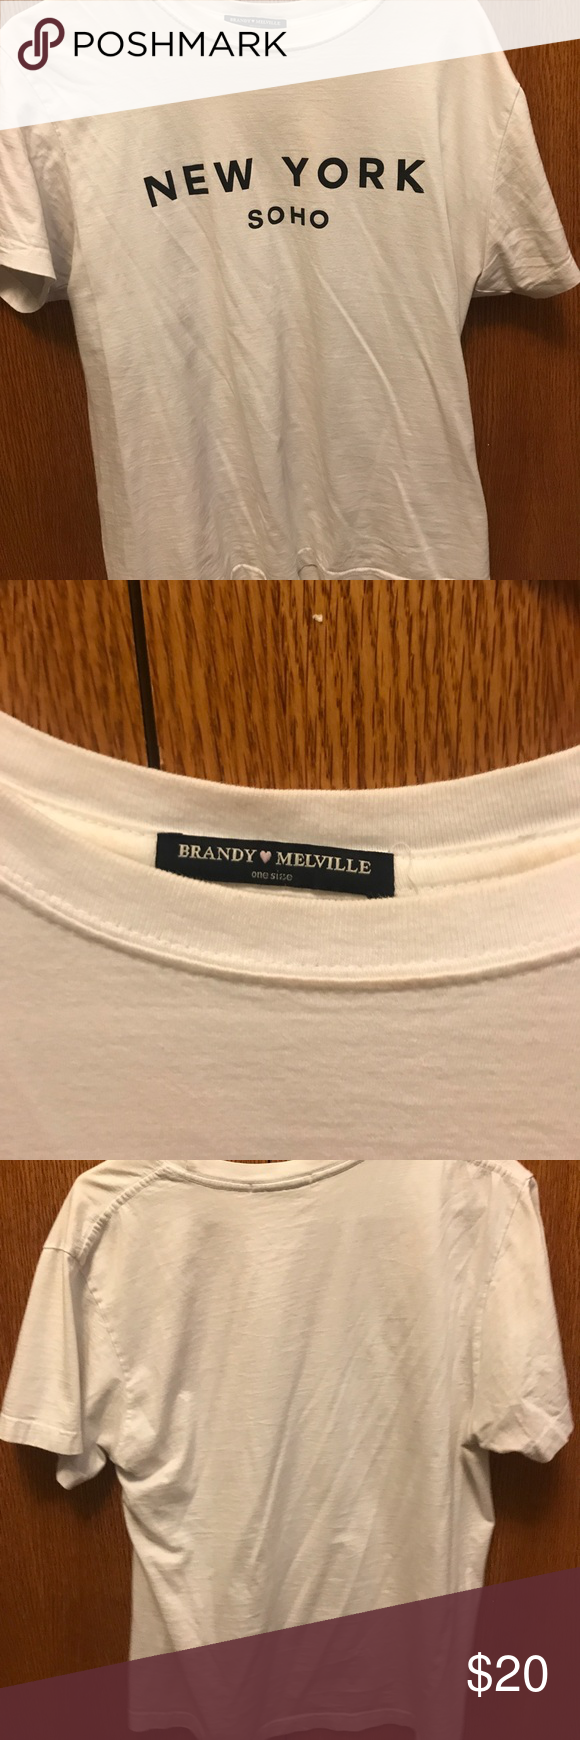 Brandy Melville Soho Tee Simple NY Soho tee, gently worn. No flaws. Size is one size but would probably best fit small or medium Brandy Melville Tops Tees - Short Sleeve